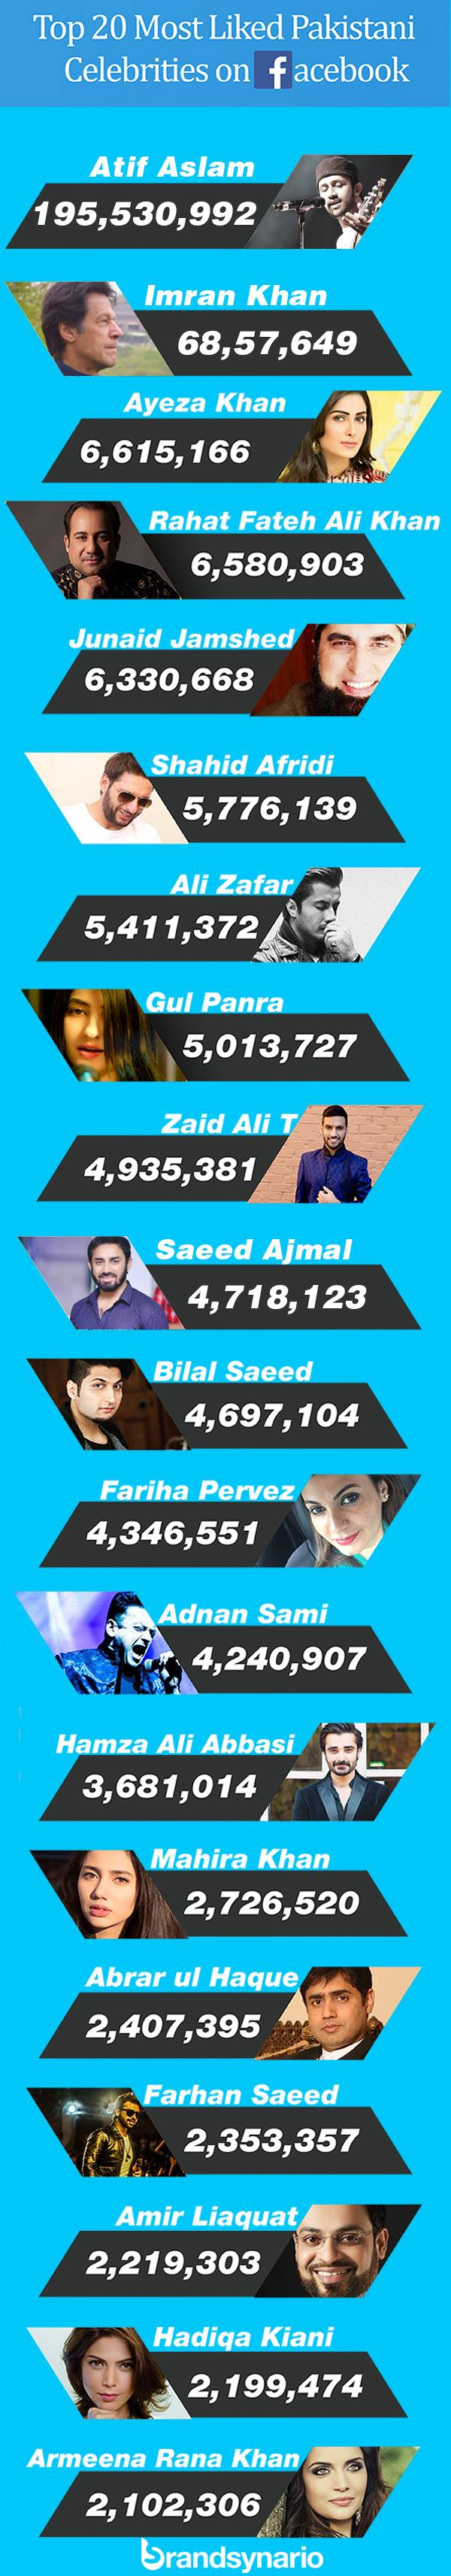 top-20-pakistani-celebs-on-facebook-2016